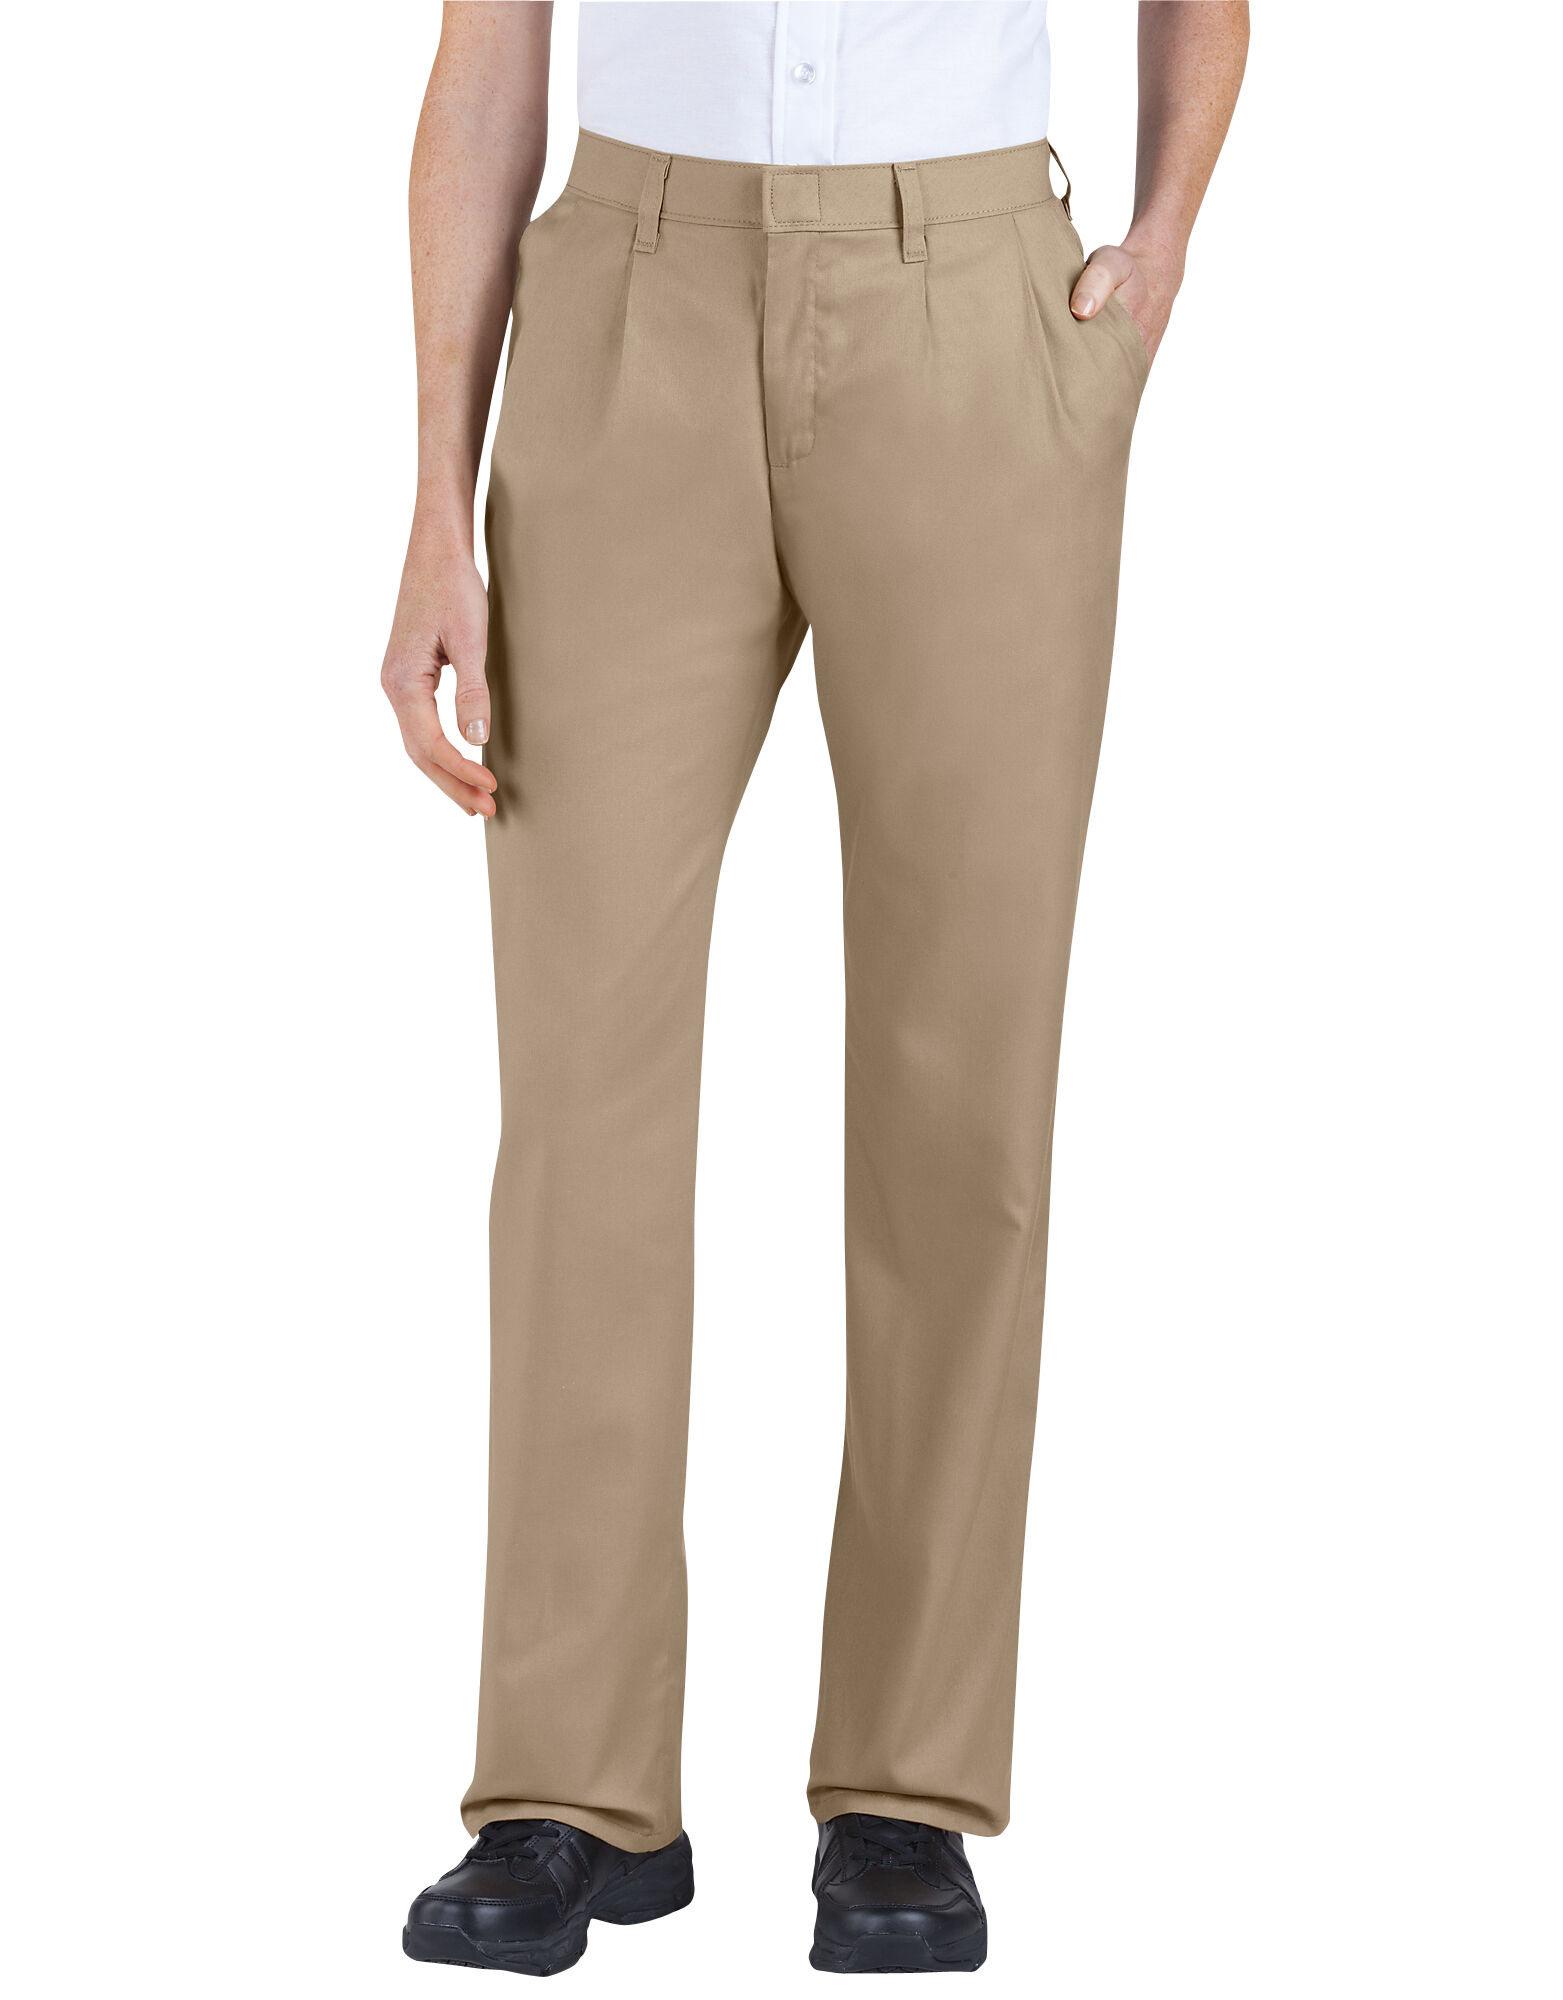 Find great deals on eBay for khaki cargo pants women. Shop with confidence.